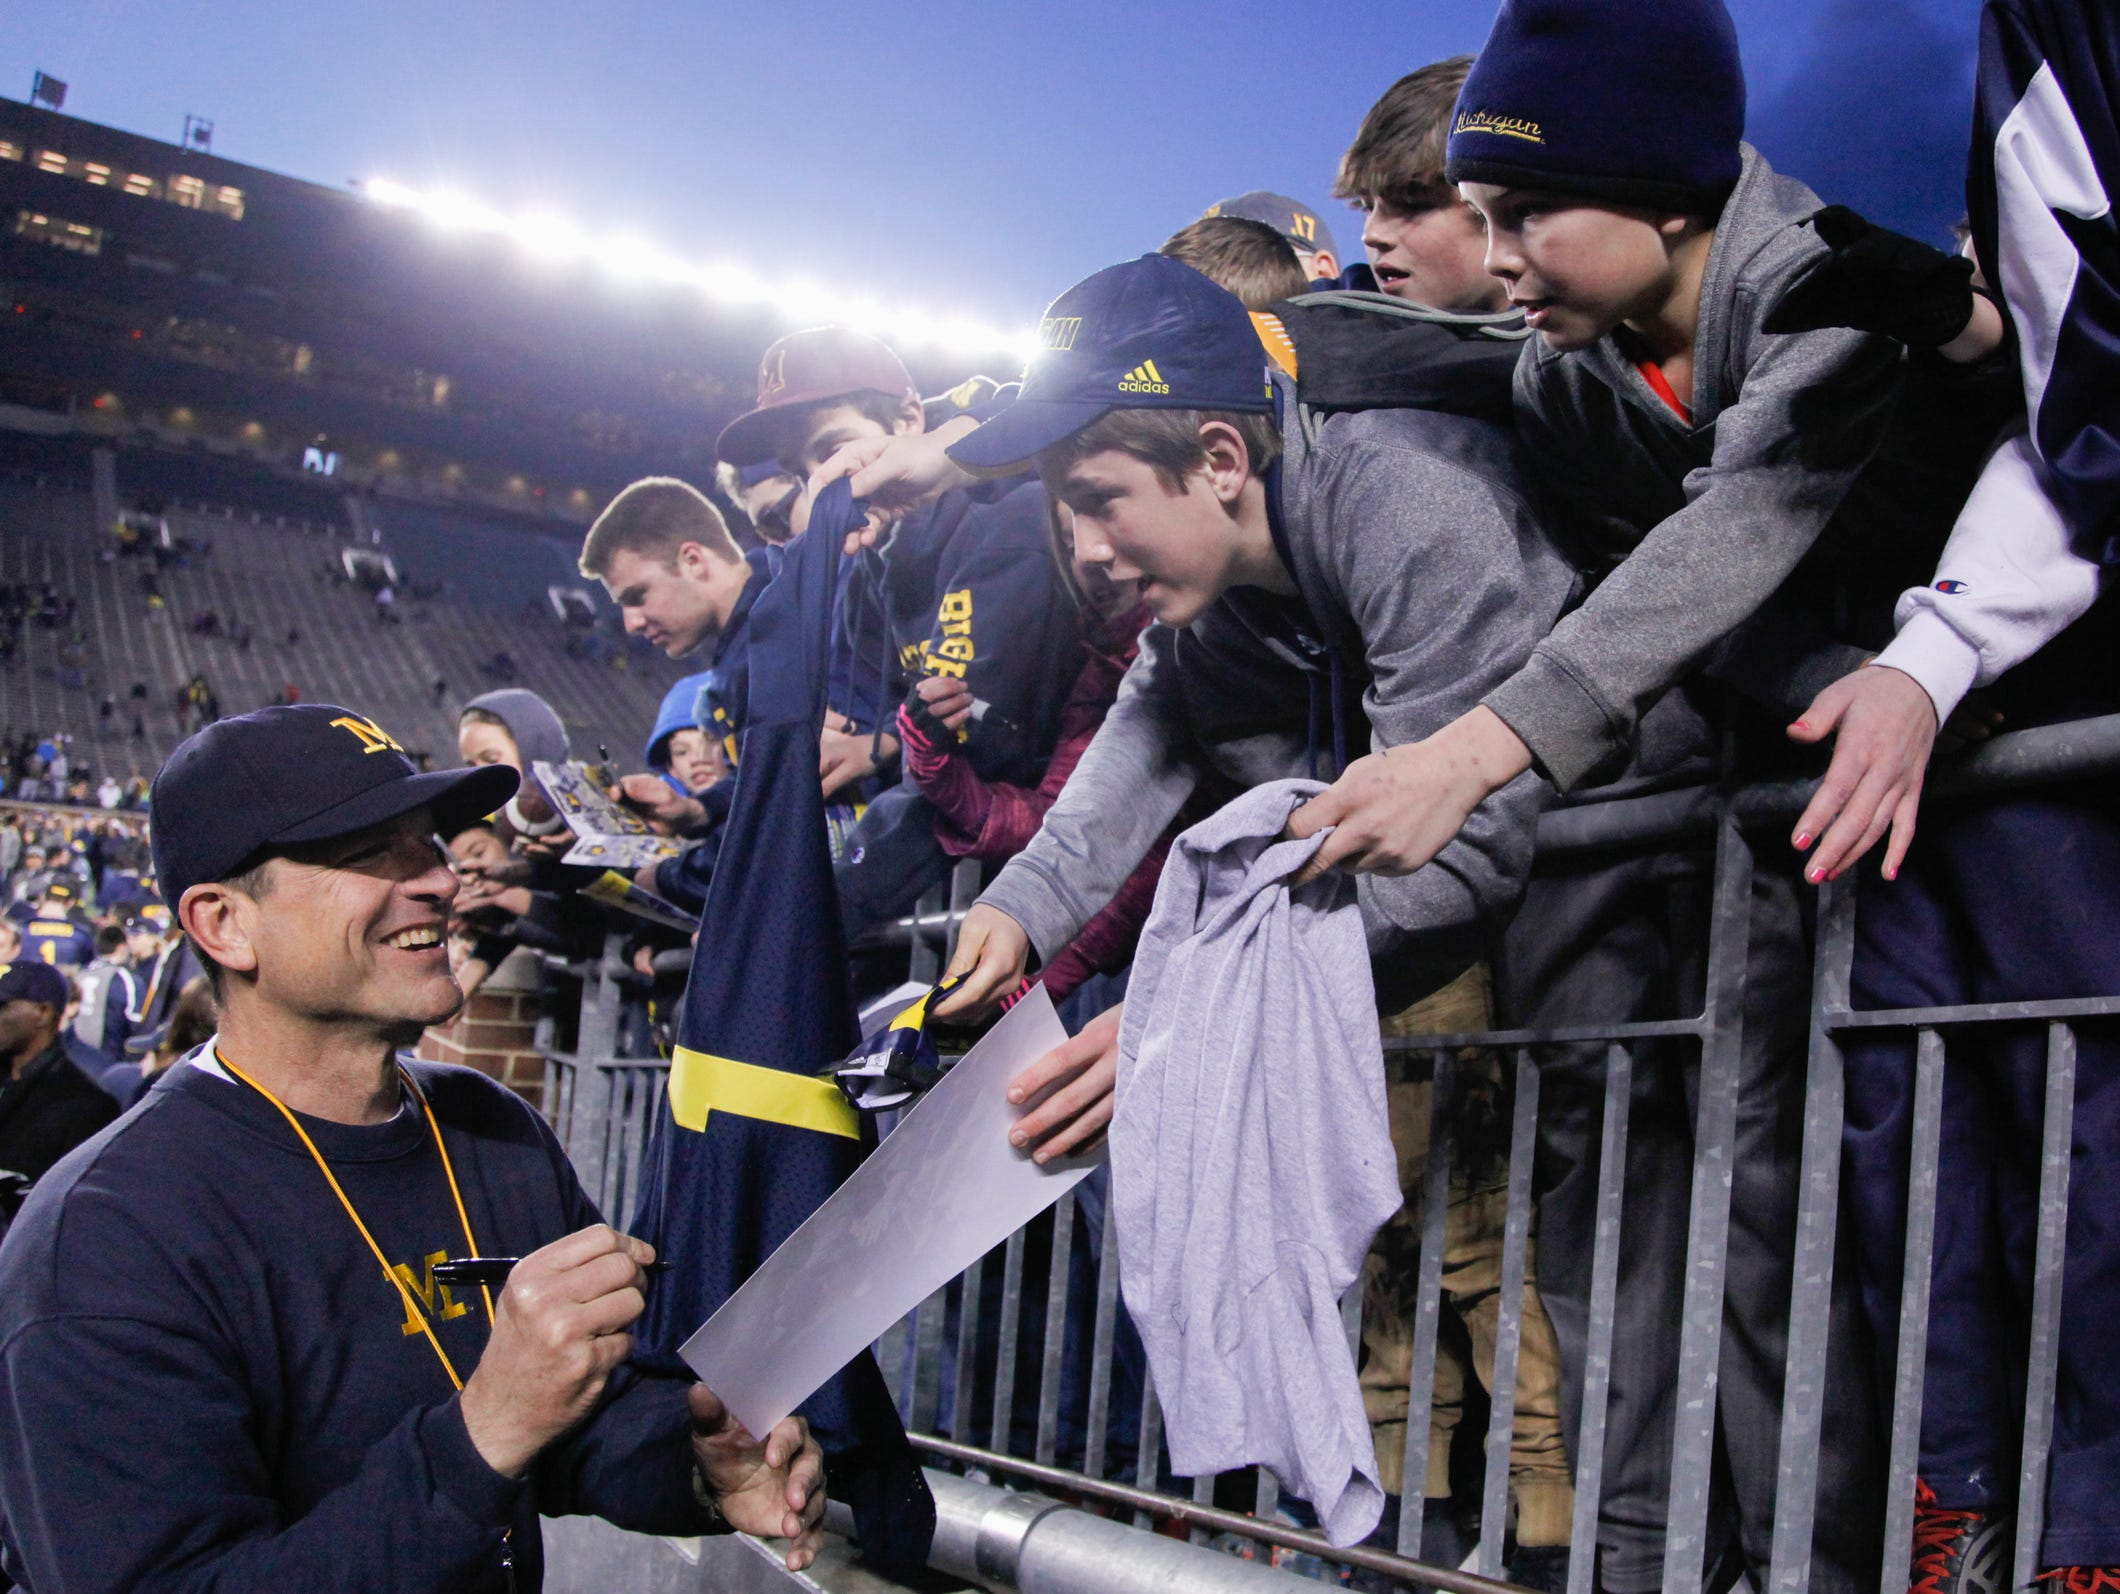 Michigan coach Jim Harbaugh signs autographs after the spring game on Friday at Michigan Stadium.